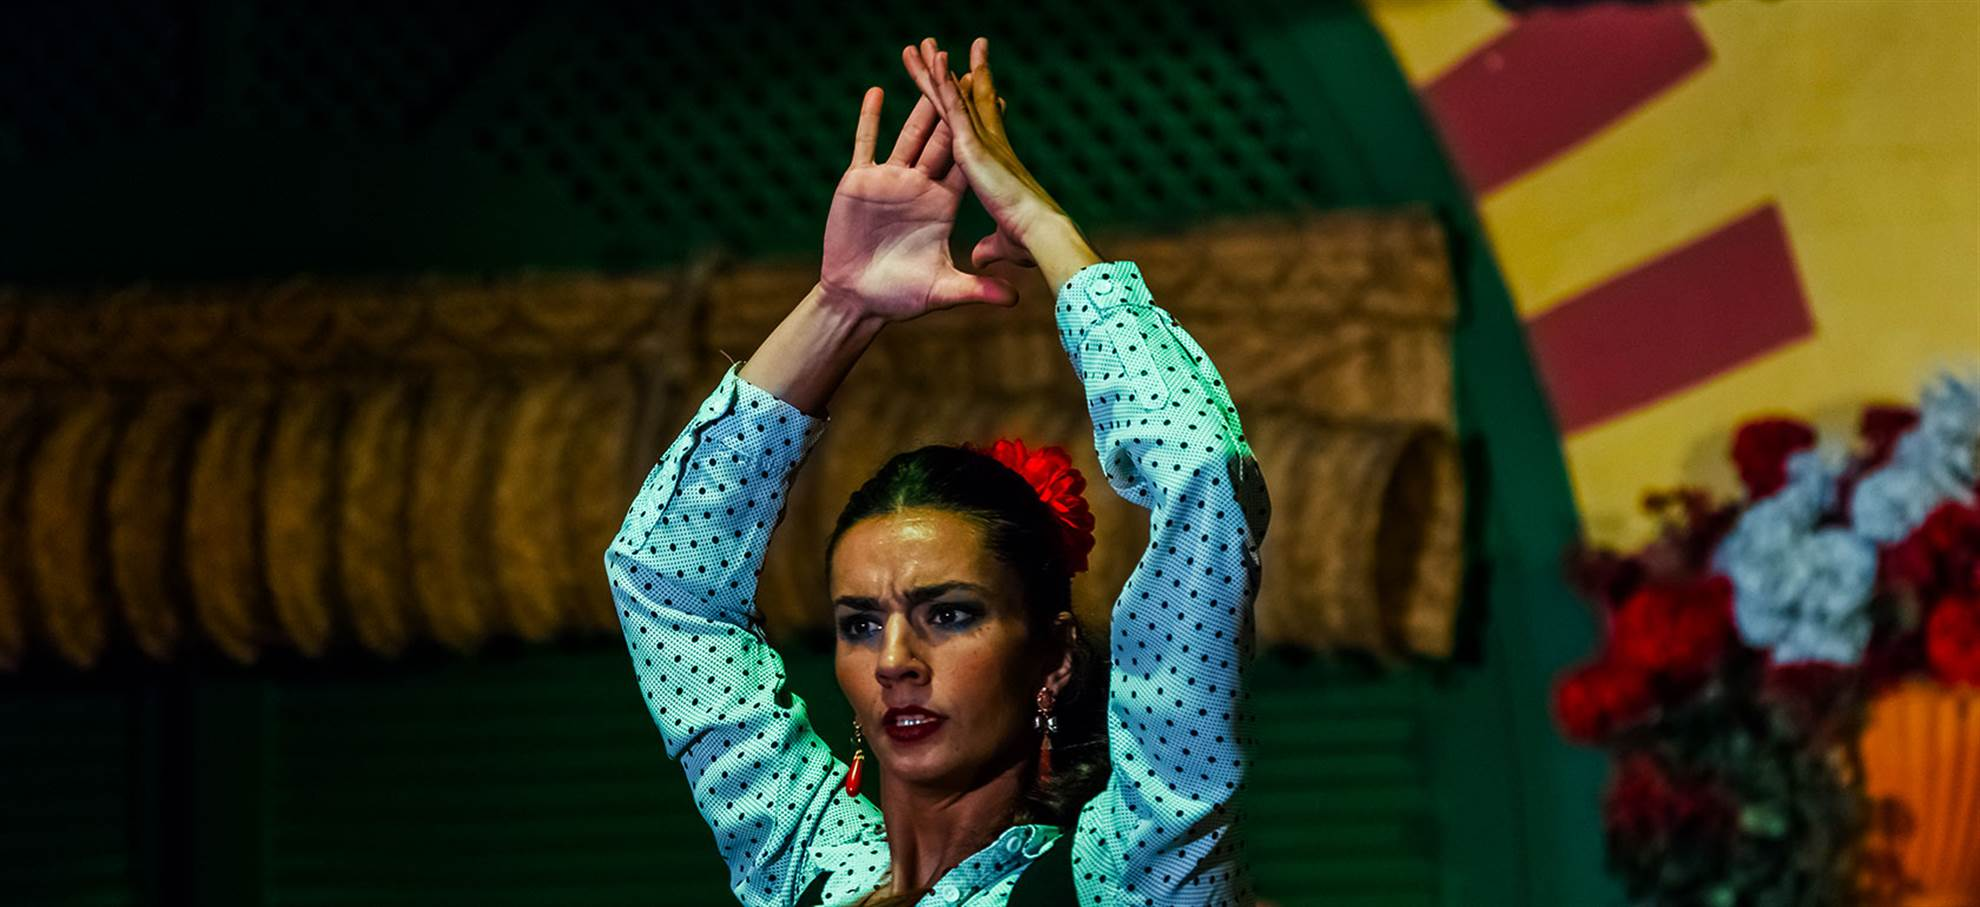 Spectacle de Flamenco dans le centre-ville